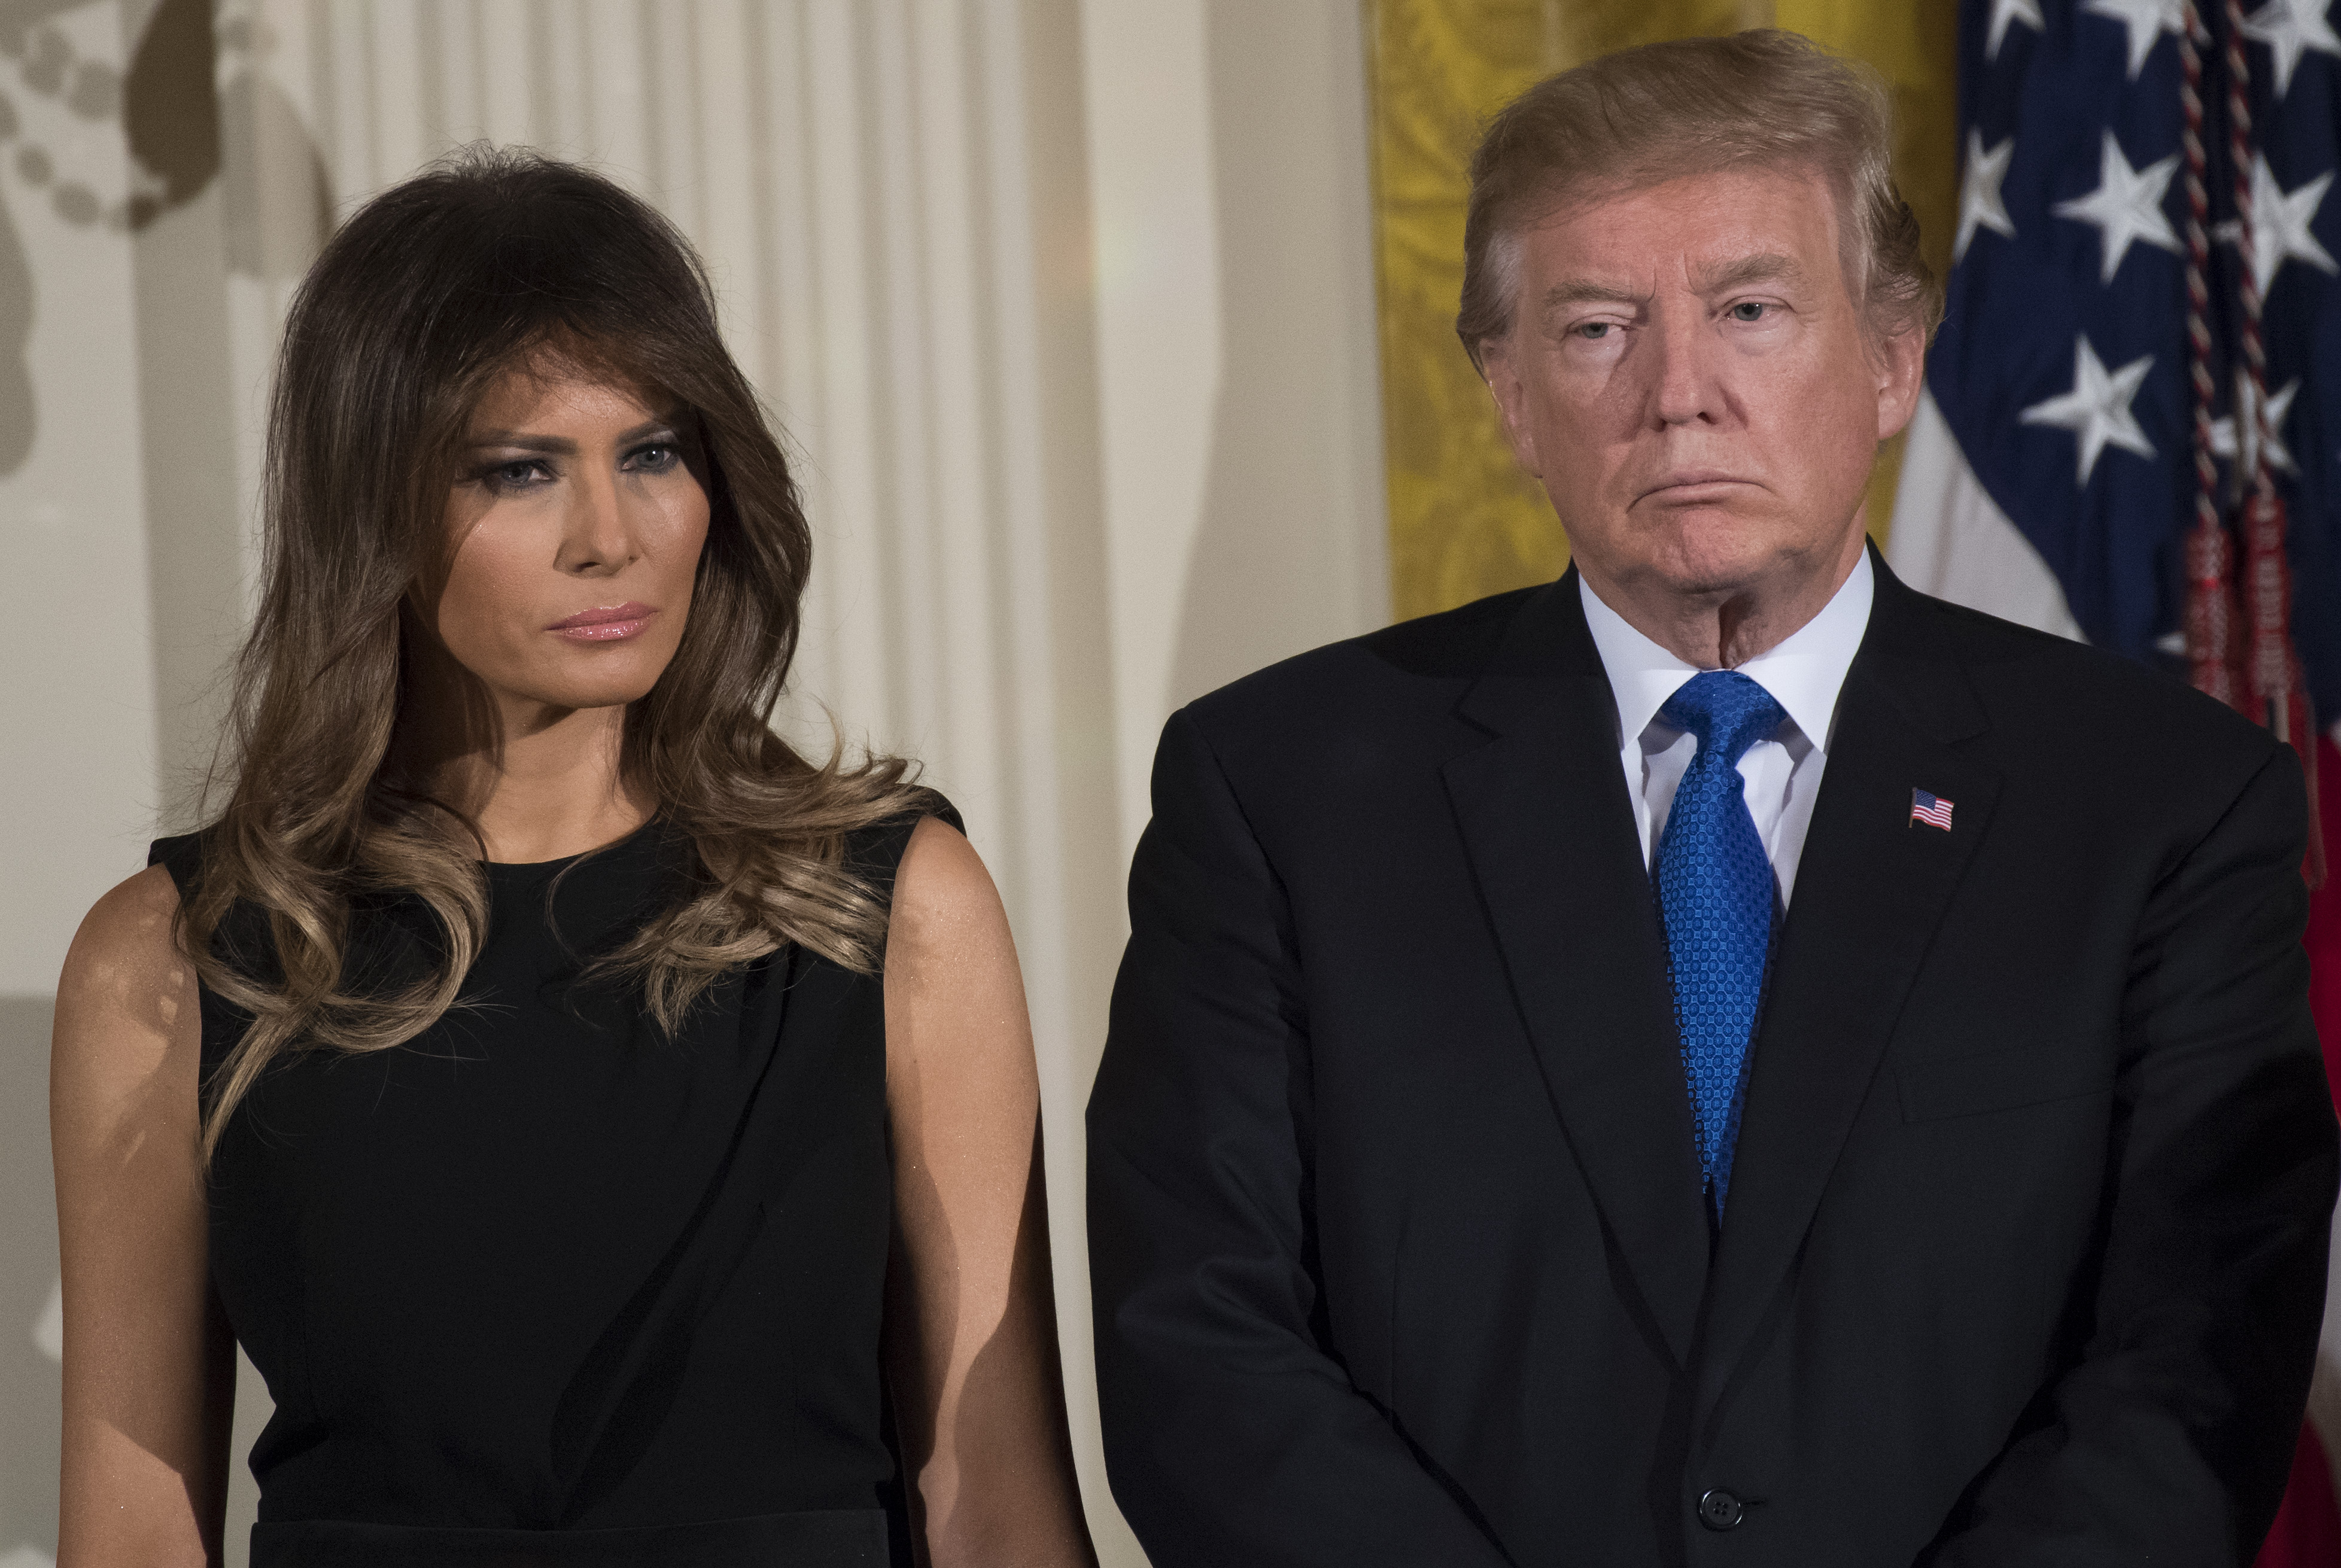 President Donald Trump and First Lady Melania Trump attend a Hanukkah reception in the East Room of the White House